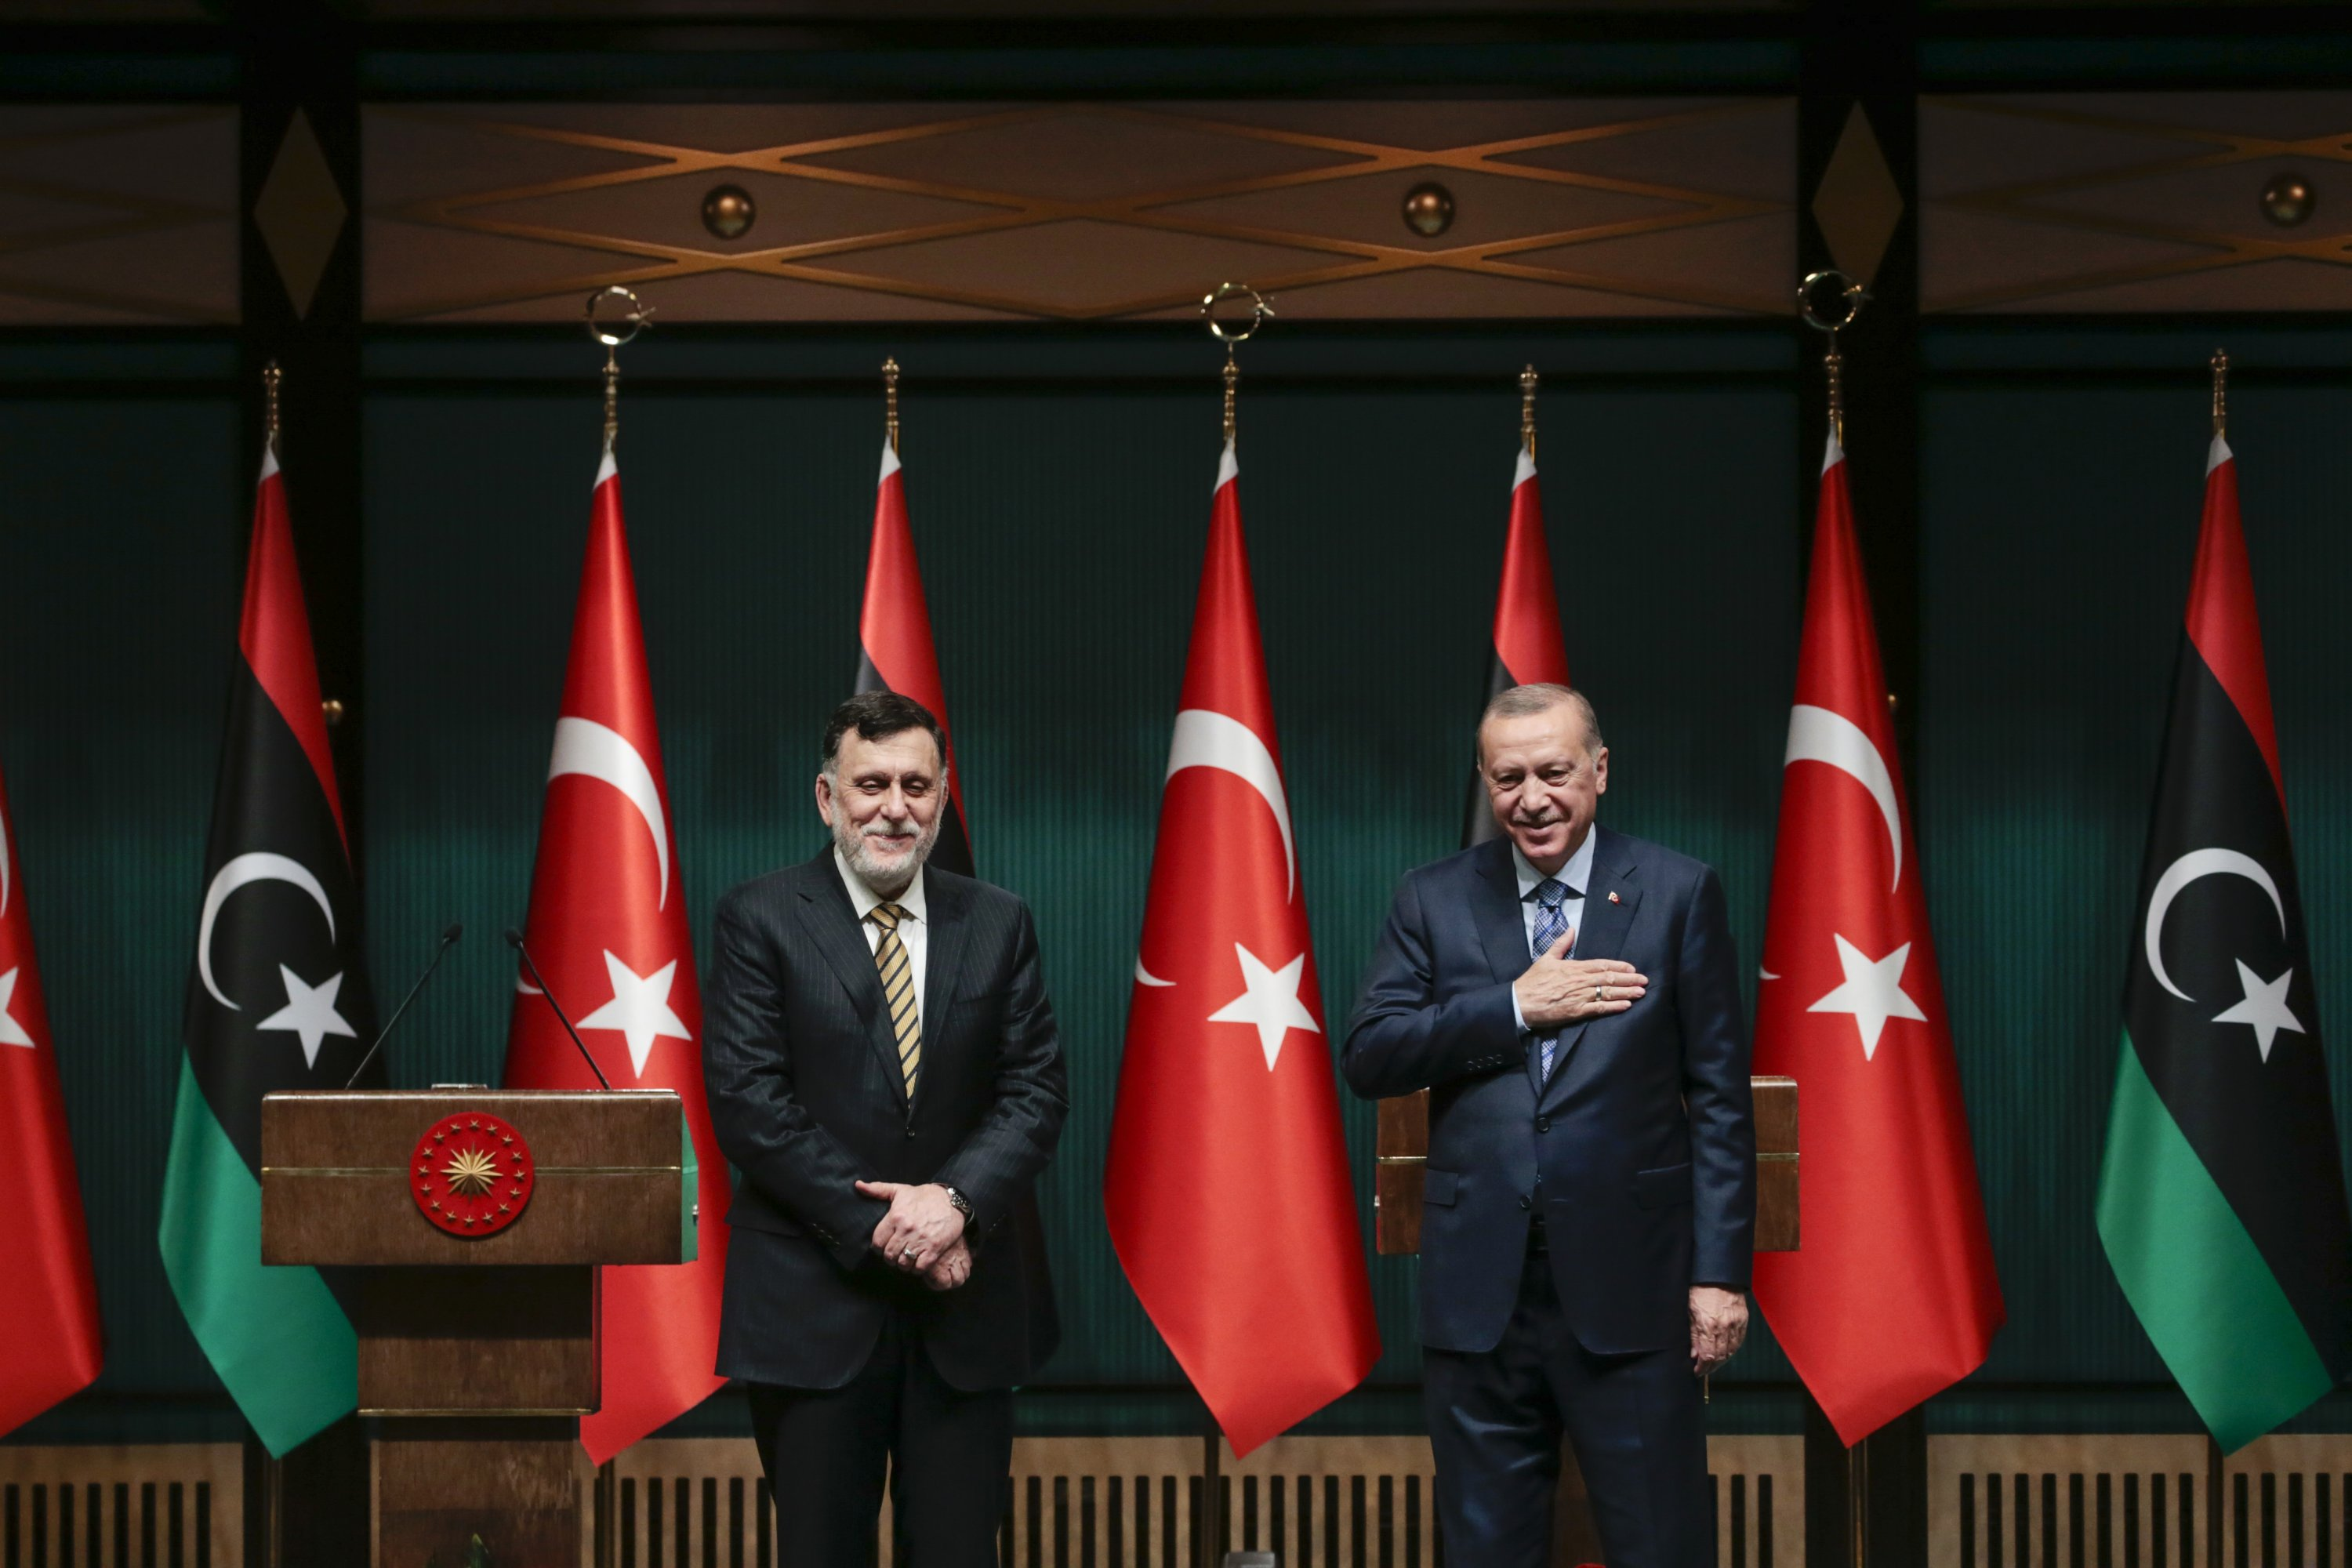 President Recep Tayyip Erdoğan and Libya's Prime Minister Fayez al-Sarraj during a press conference after their meeting on the Libya crisis and bilateral relations, Ankara, June 4, 2020. (AA Photo)